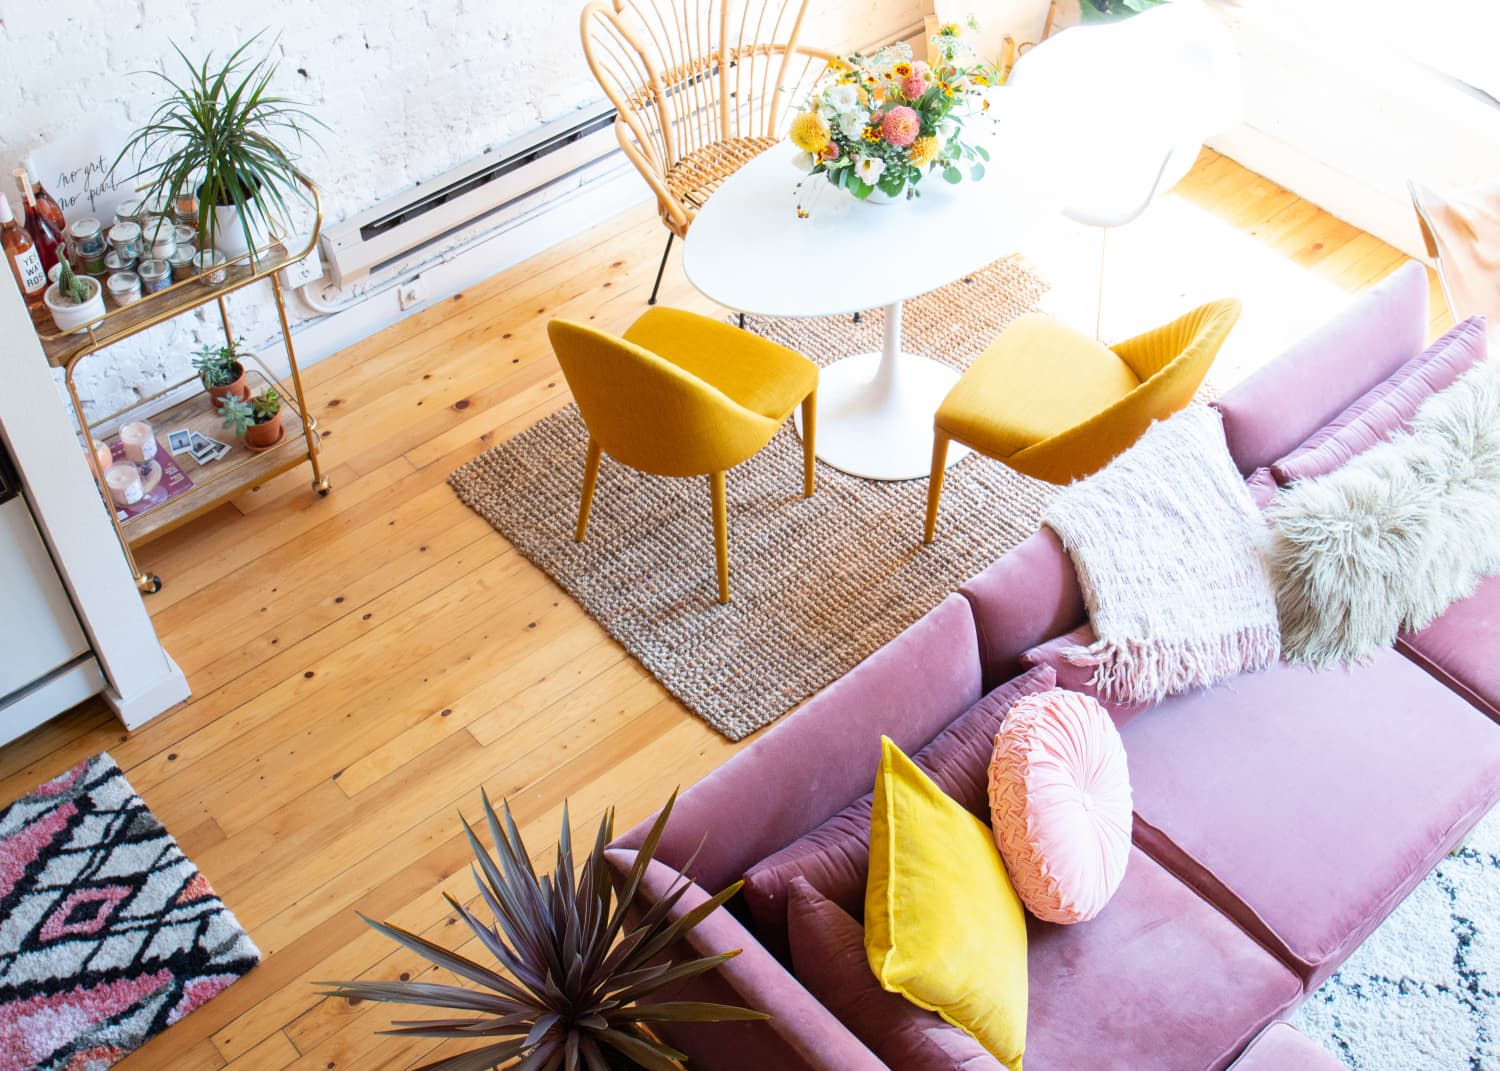 7 Design Tweaks That Will Instantly Refresh Your Small Space for Spring | Apartment Therapy